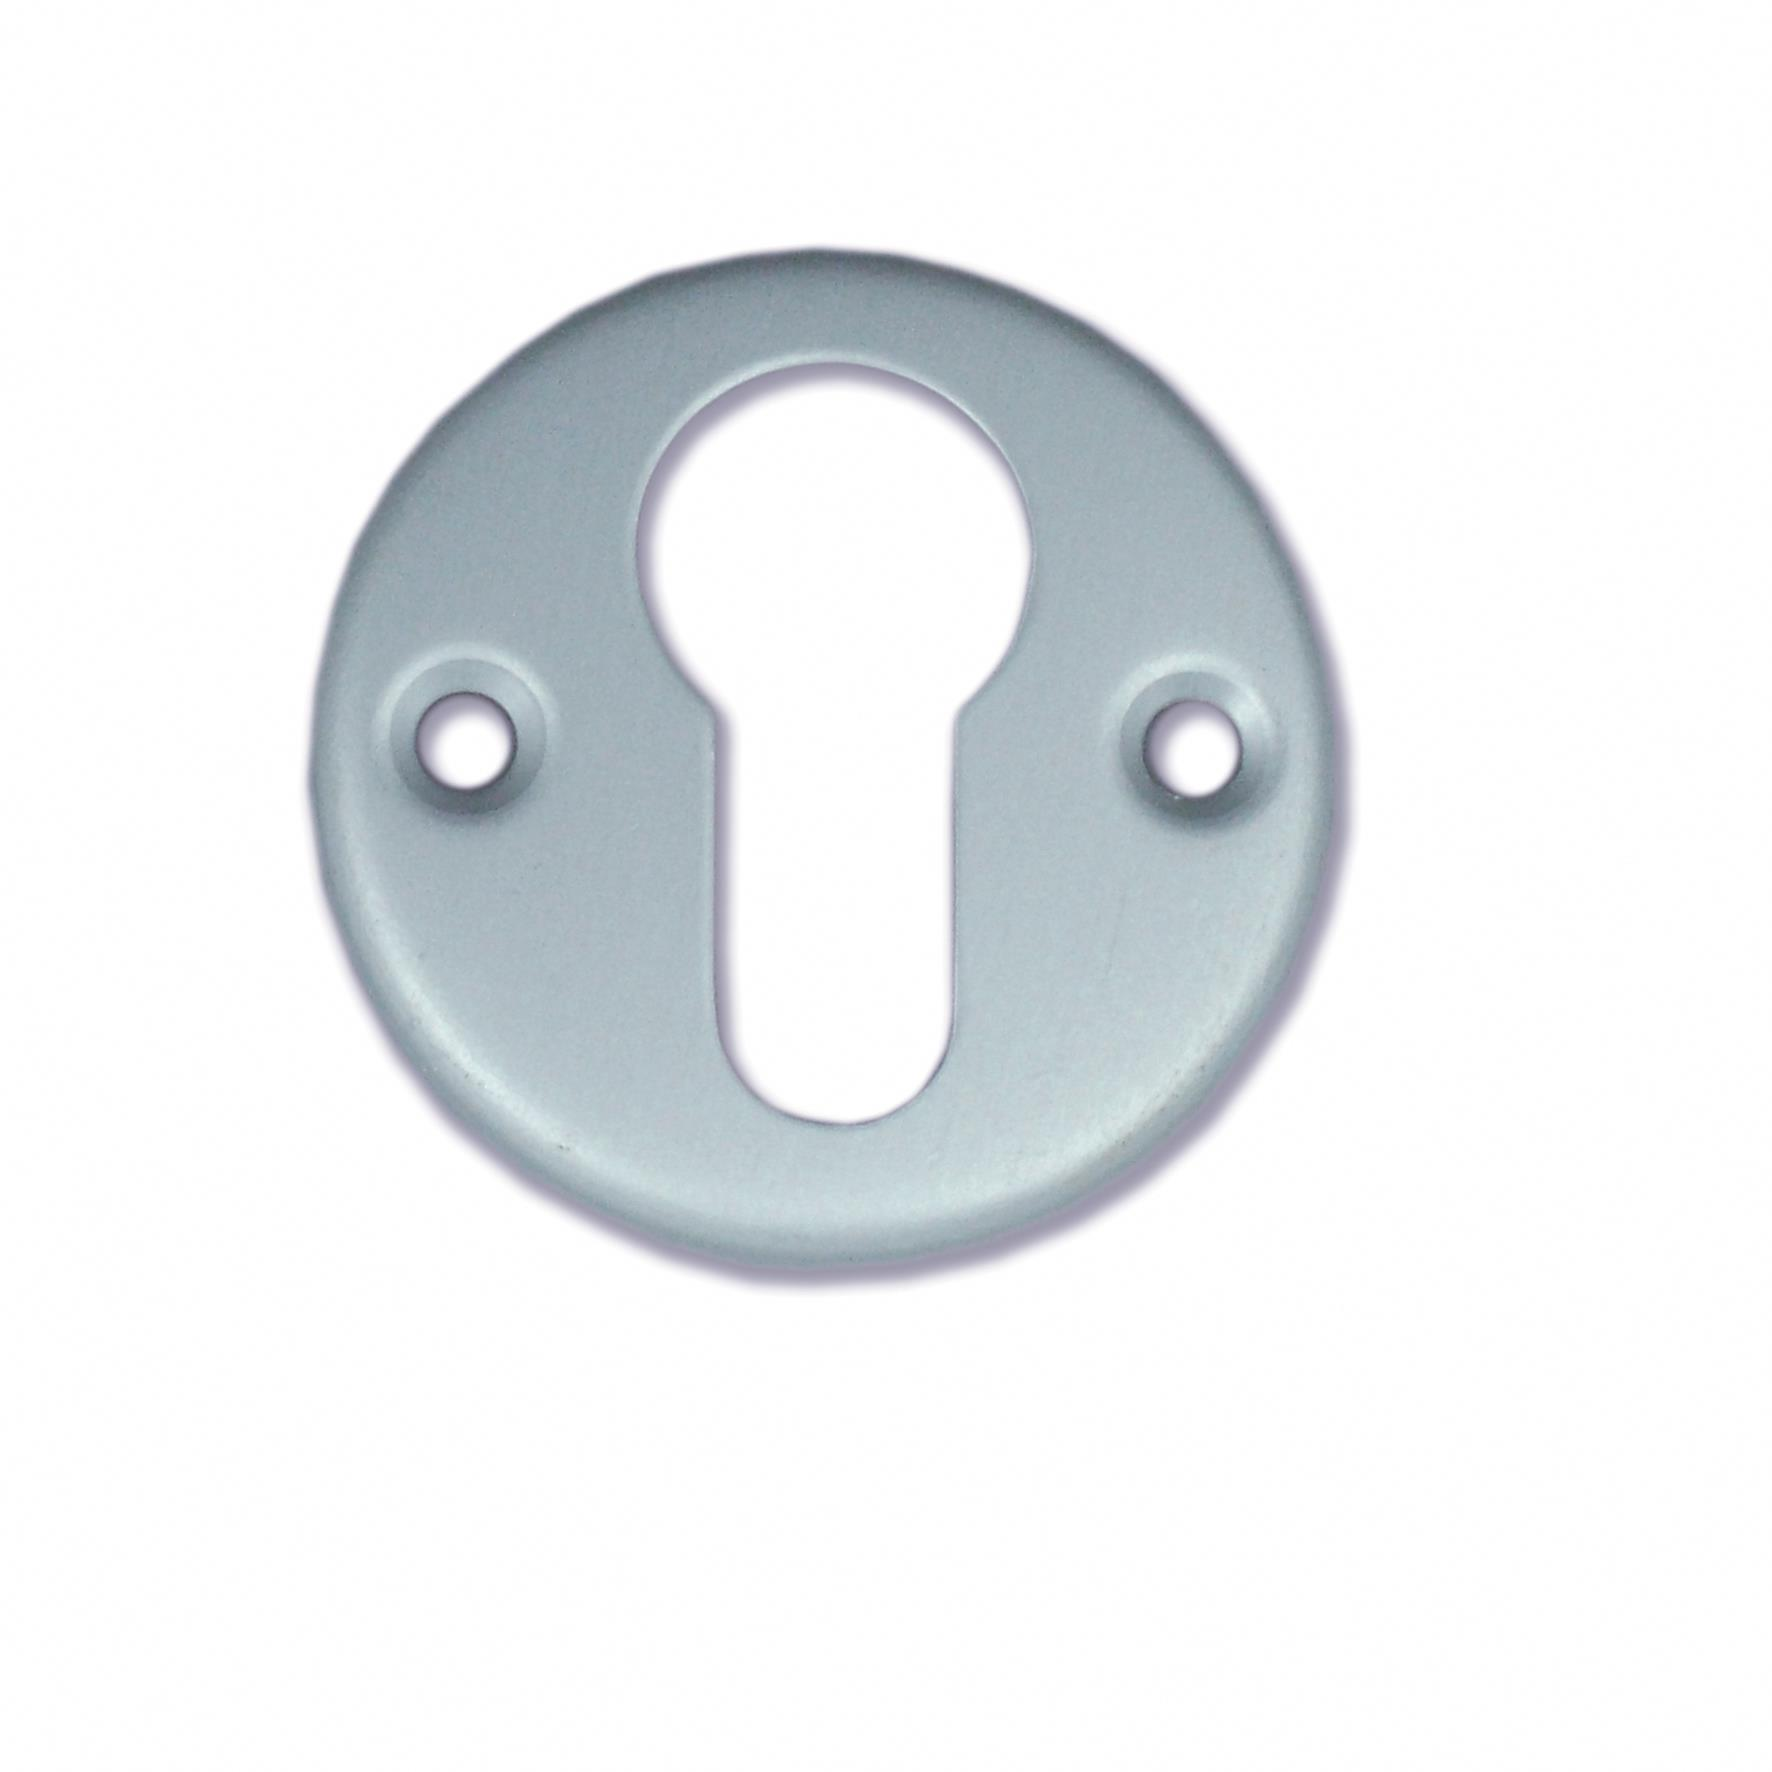 5162 / 5163 - Oval & Euro Profile Escutcheon